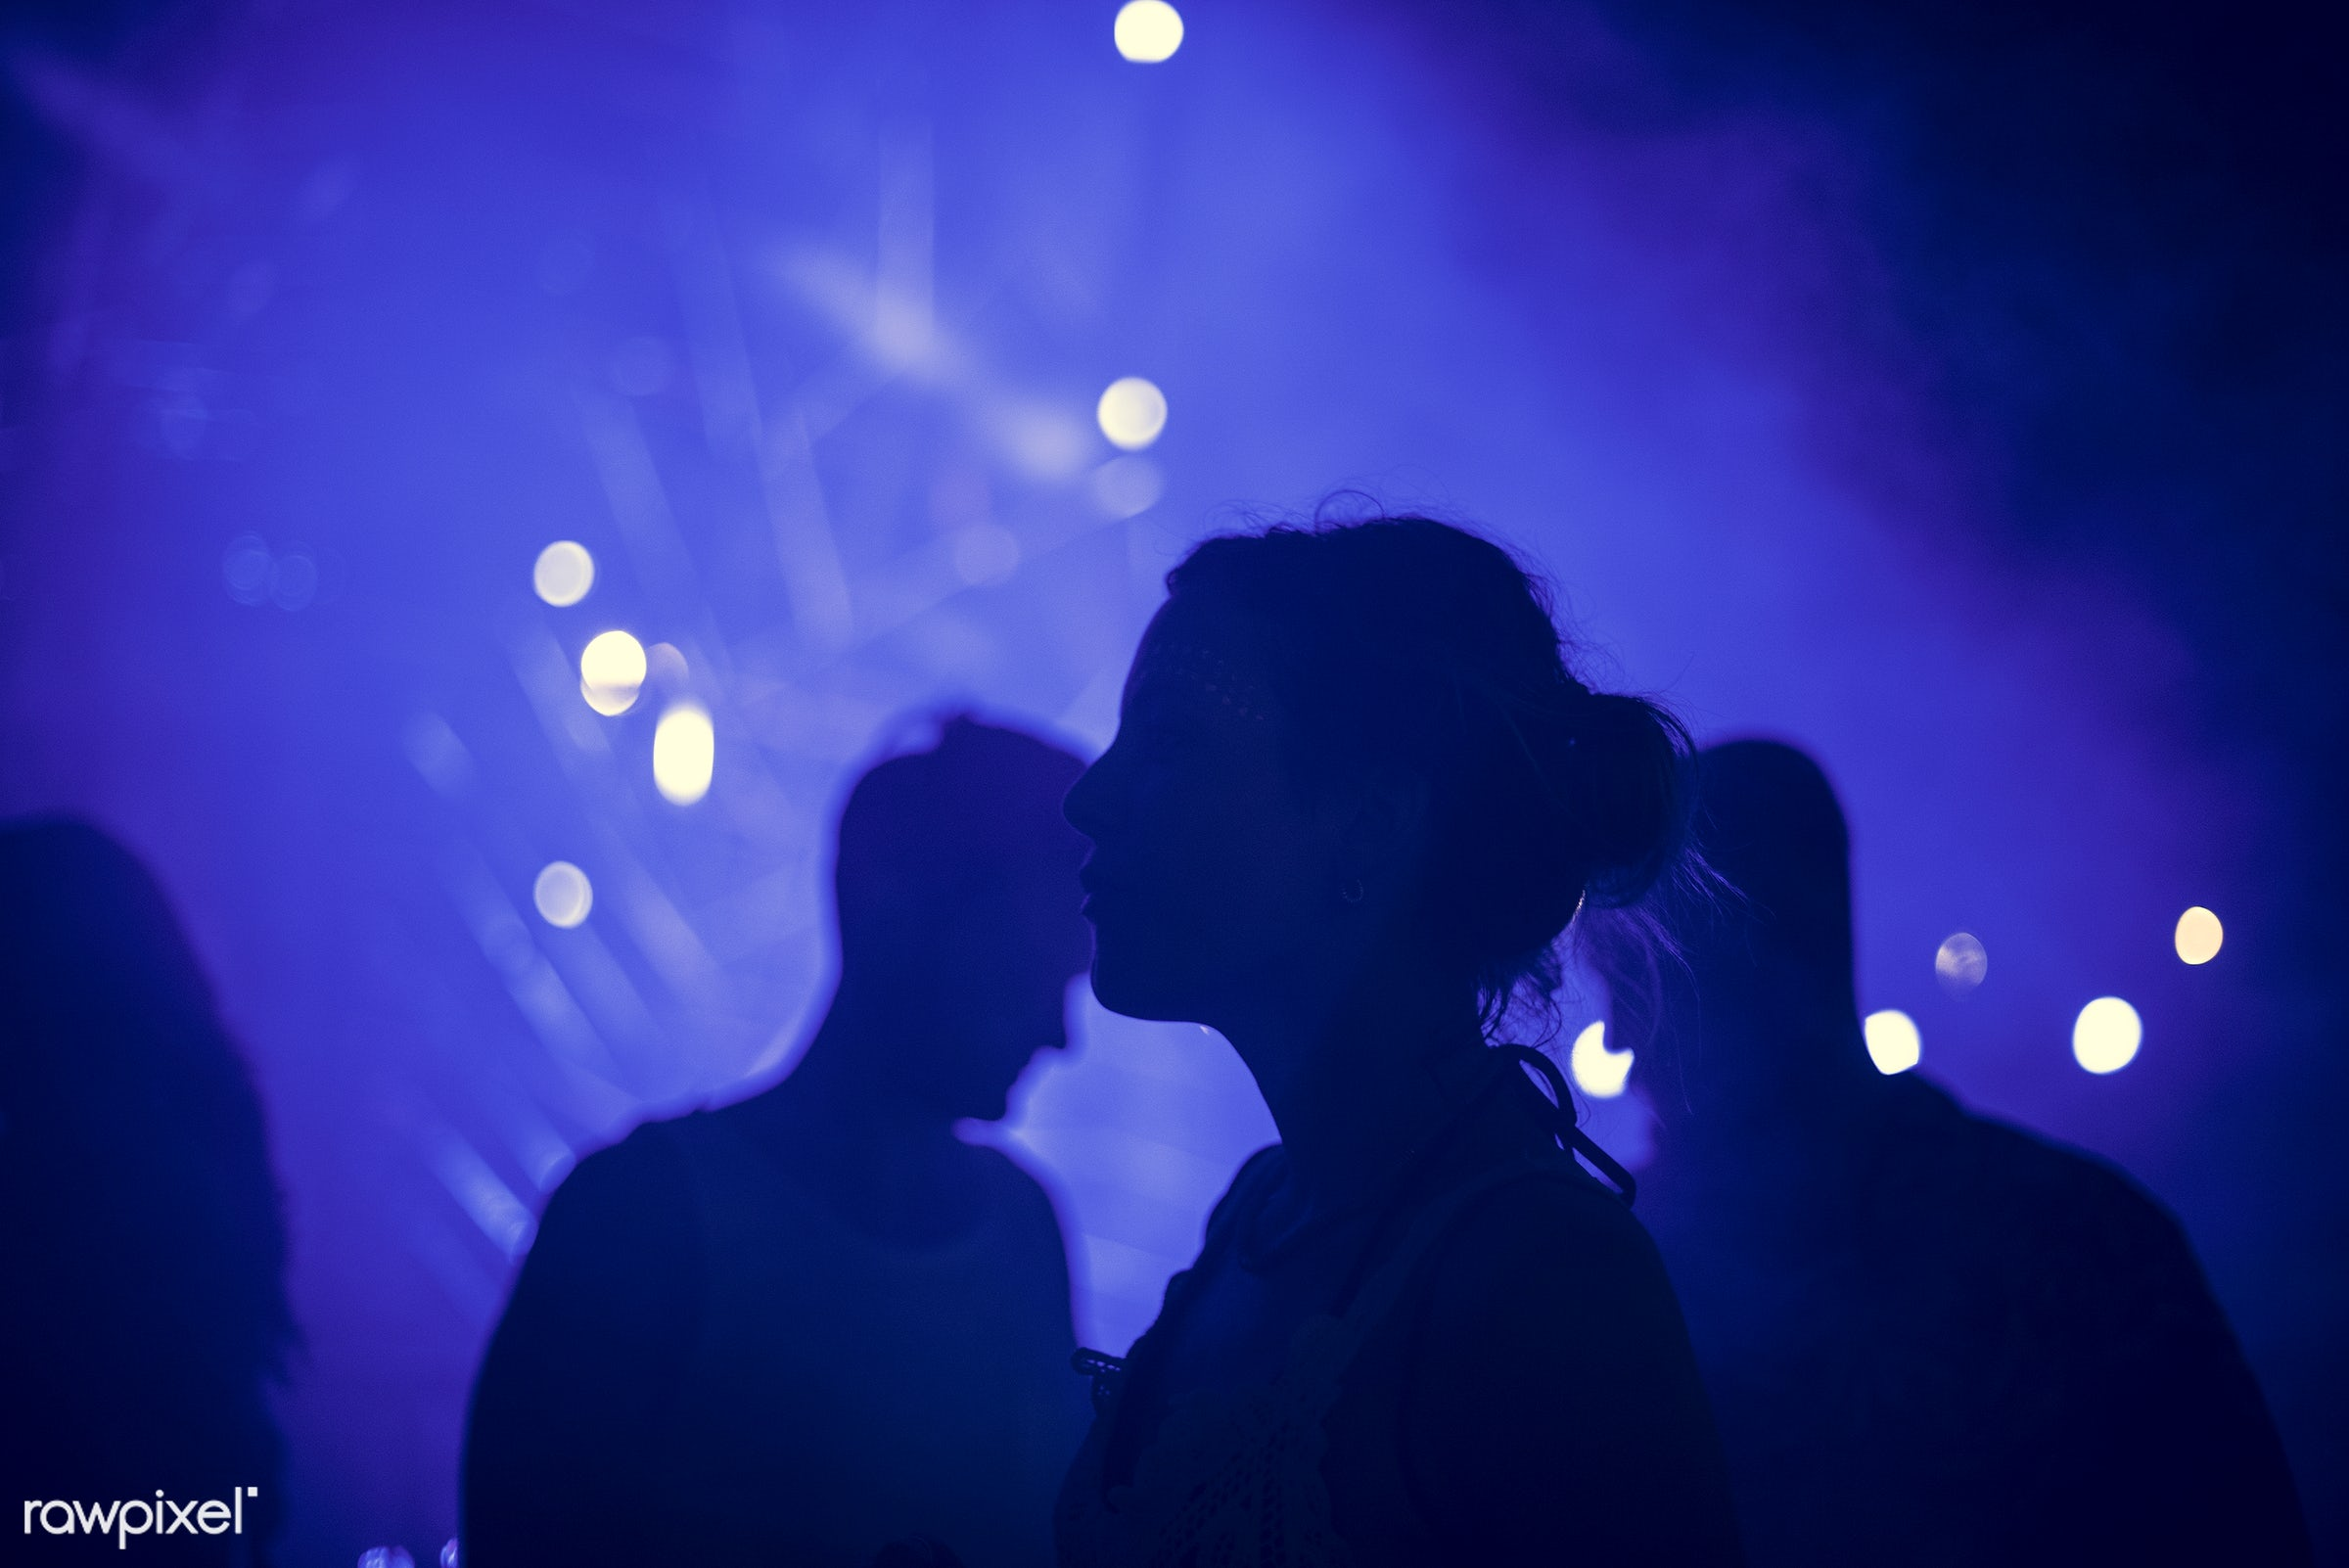 illuminated, concert, person, relax, silhouette, perform, show, party, people, event, mixing, woman, lifestyle, weekend,...